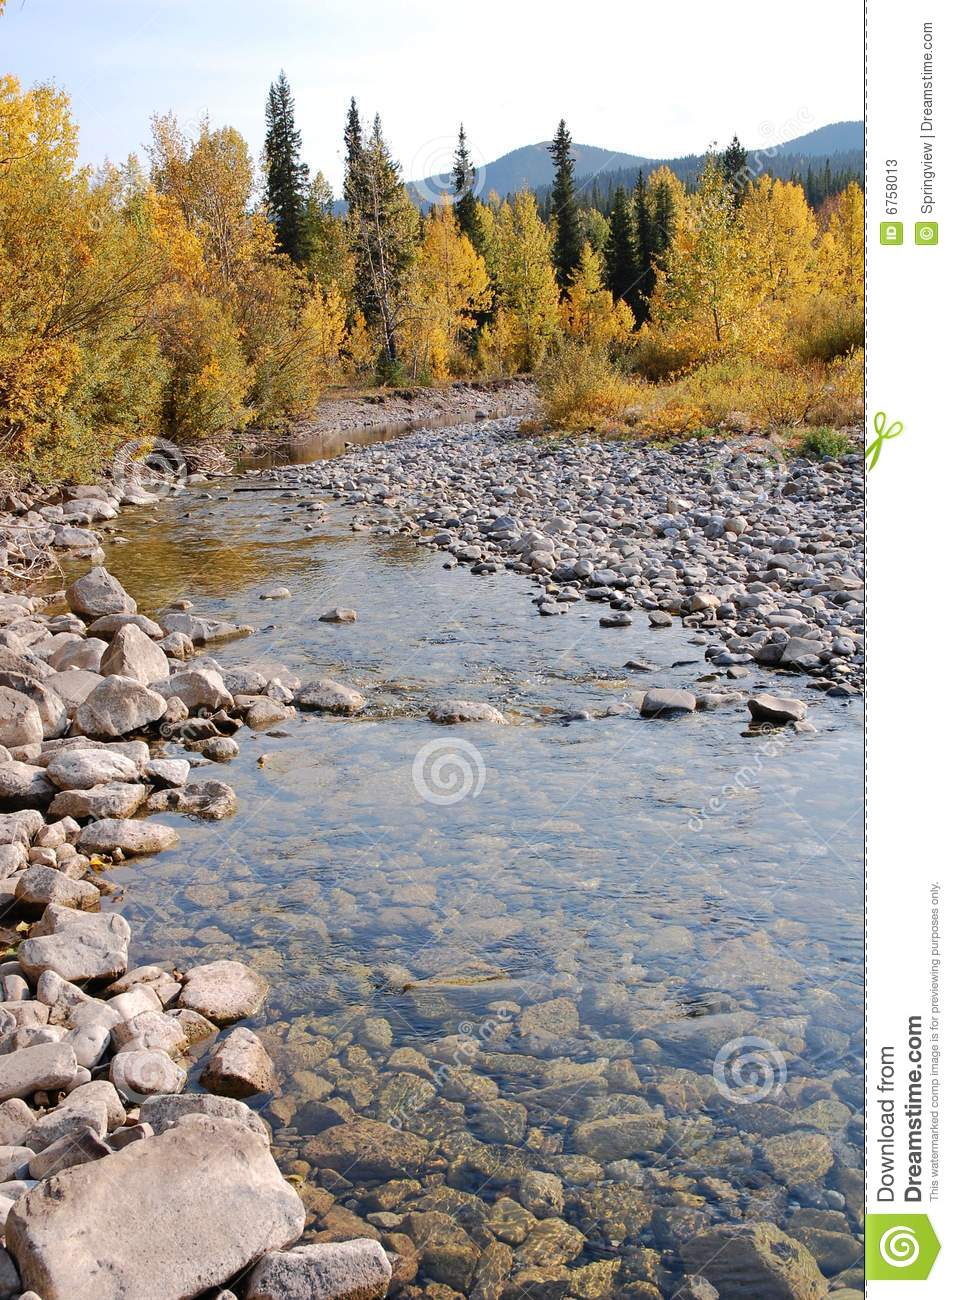 River bed stock photos image 6758013 for Landscaping rocks canada